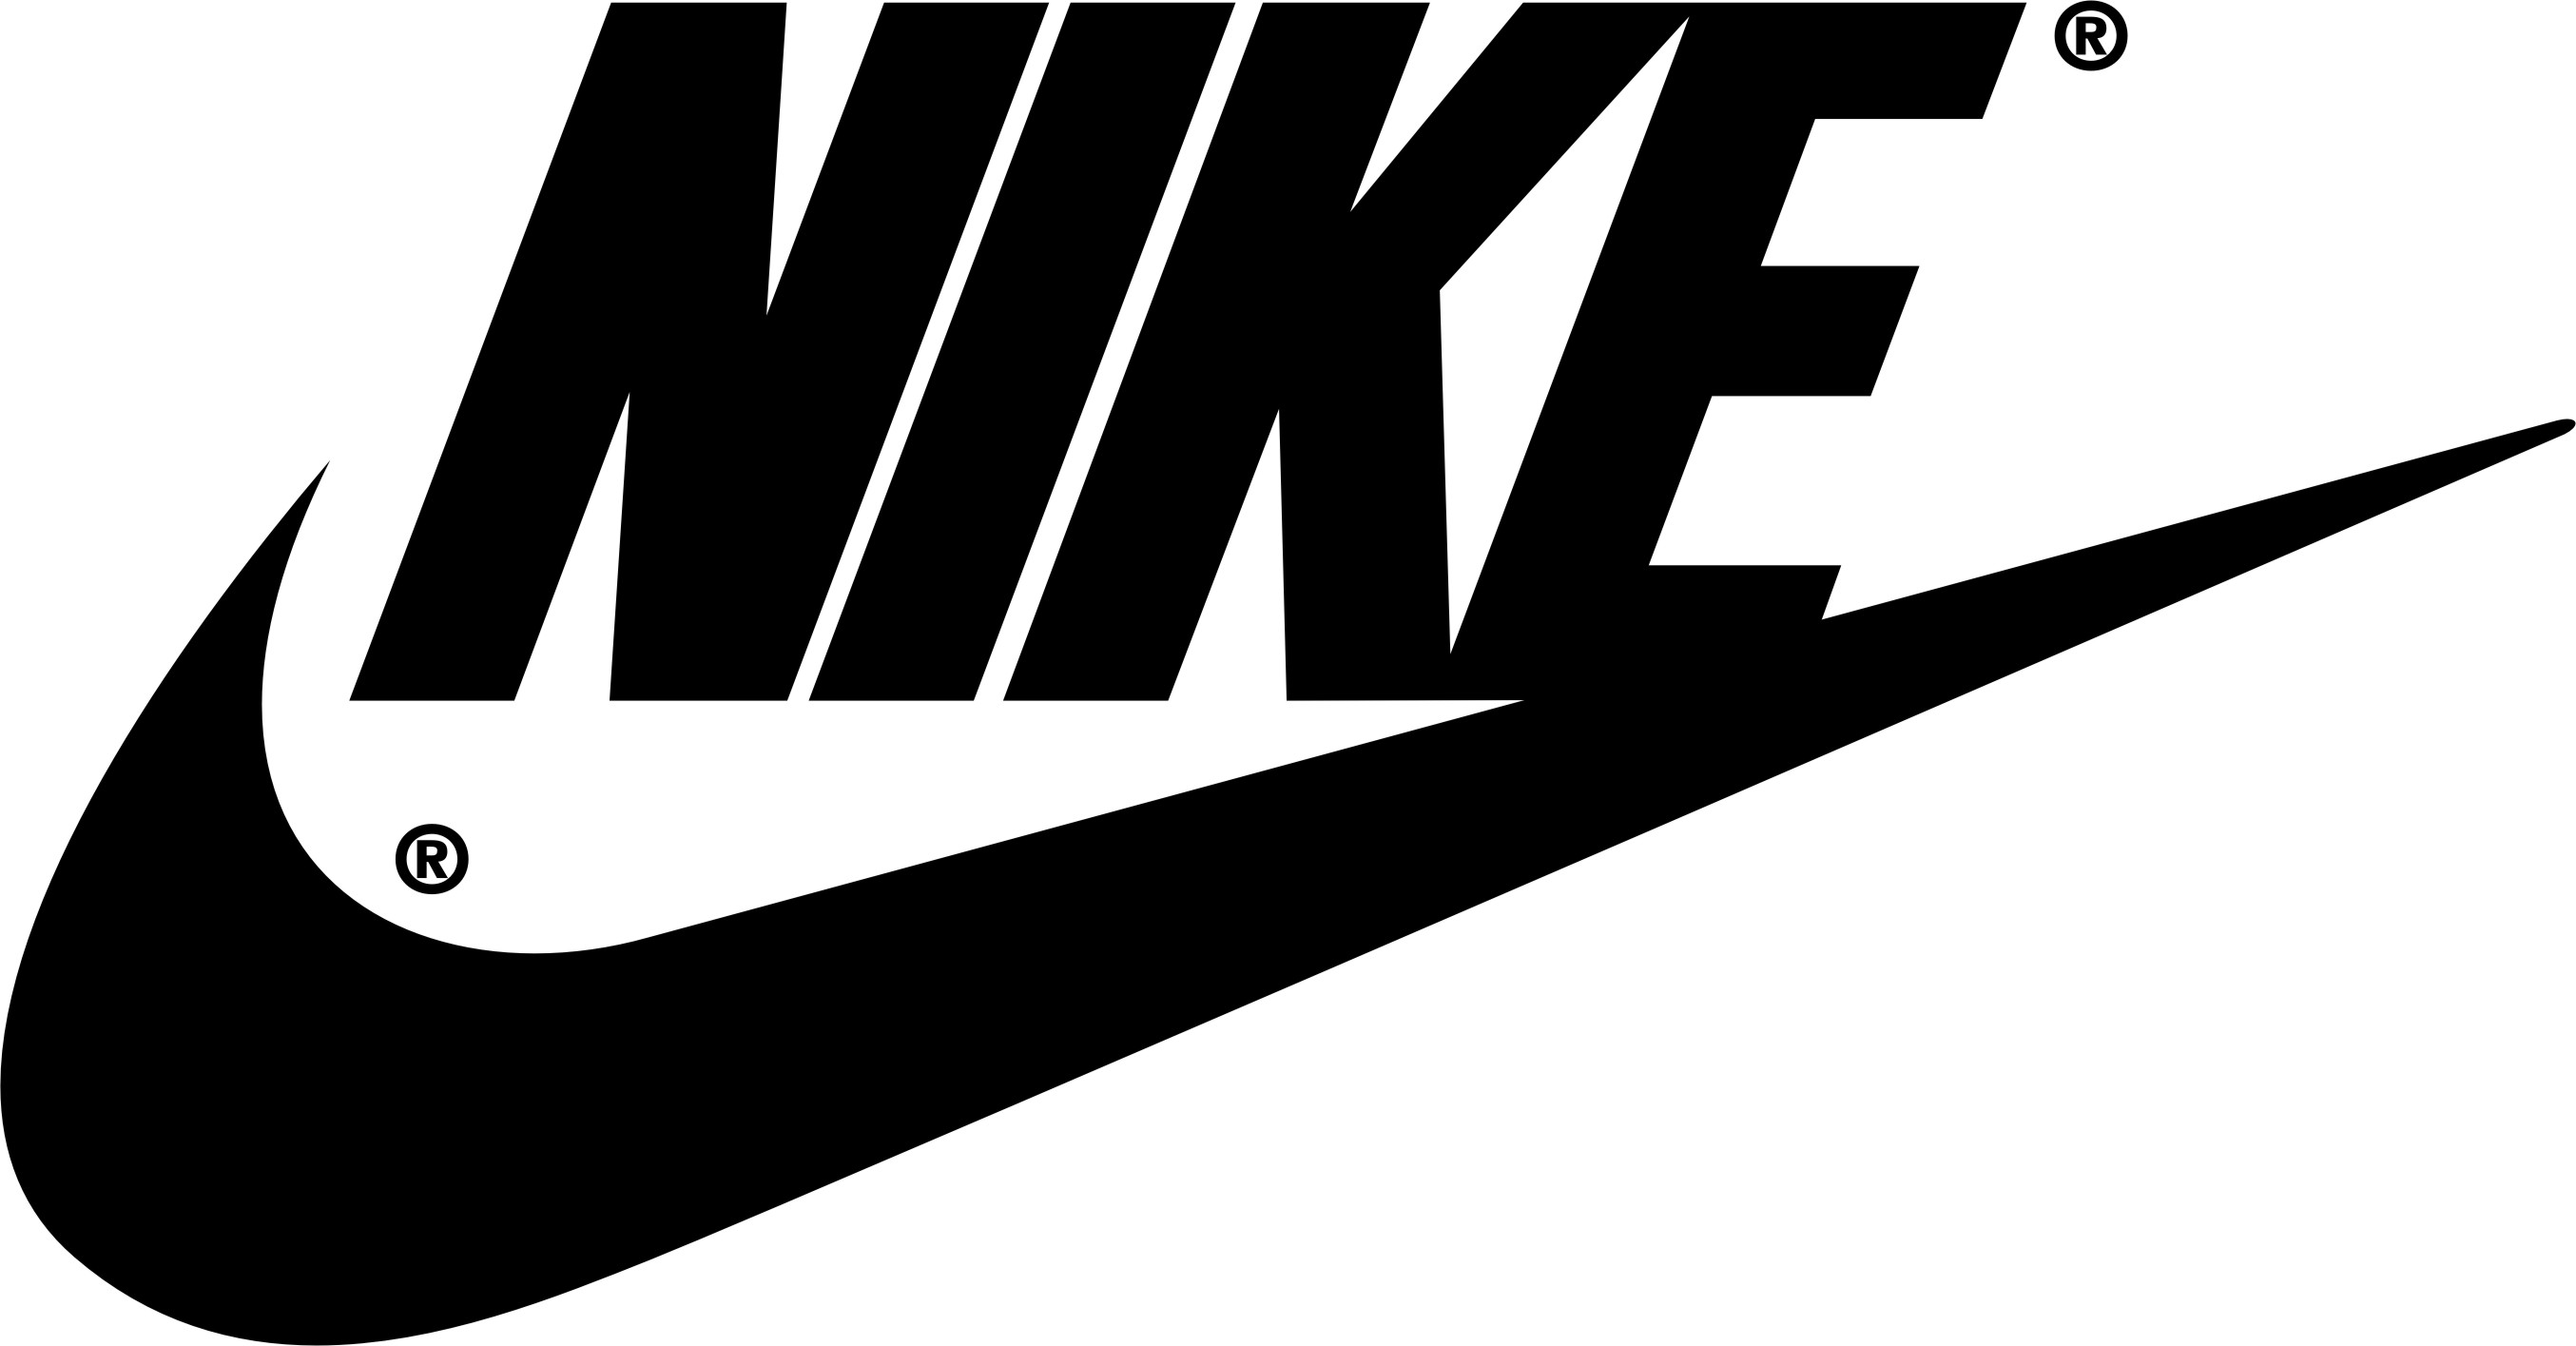 Free download Nike Logo Hd Wallpapers Hd Wallpapers.